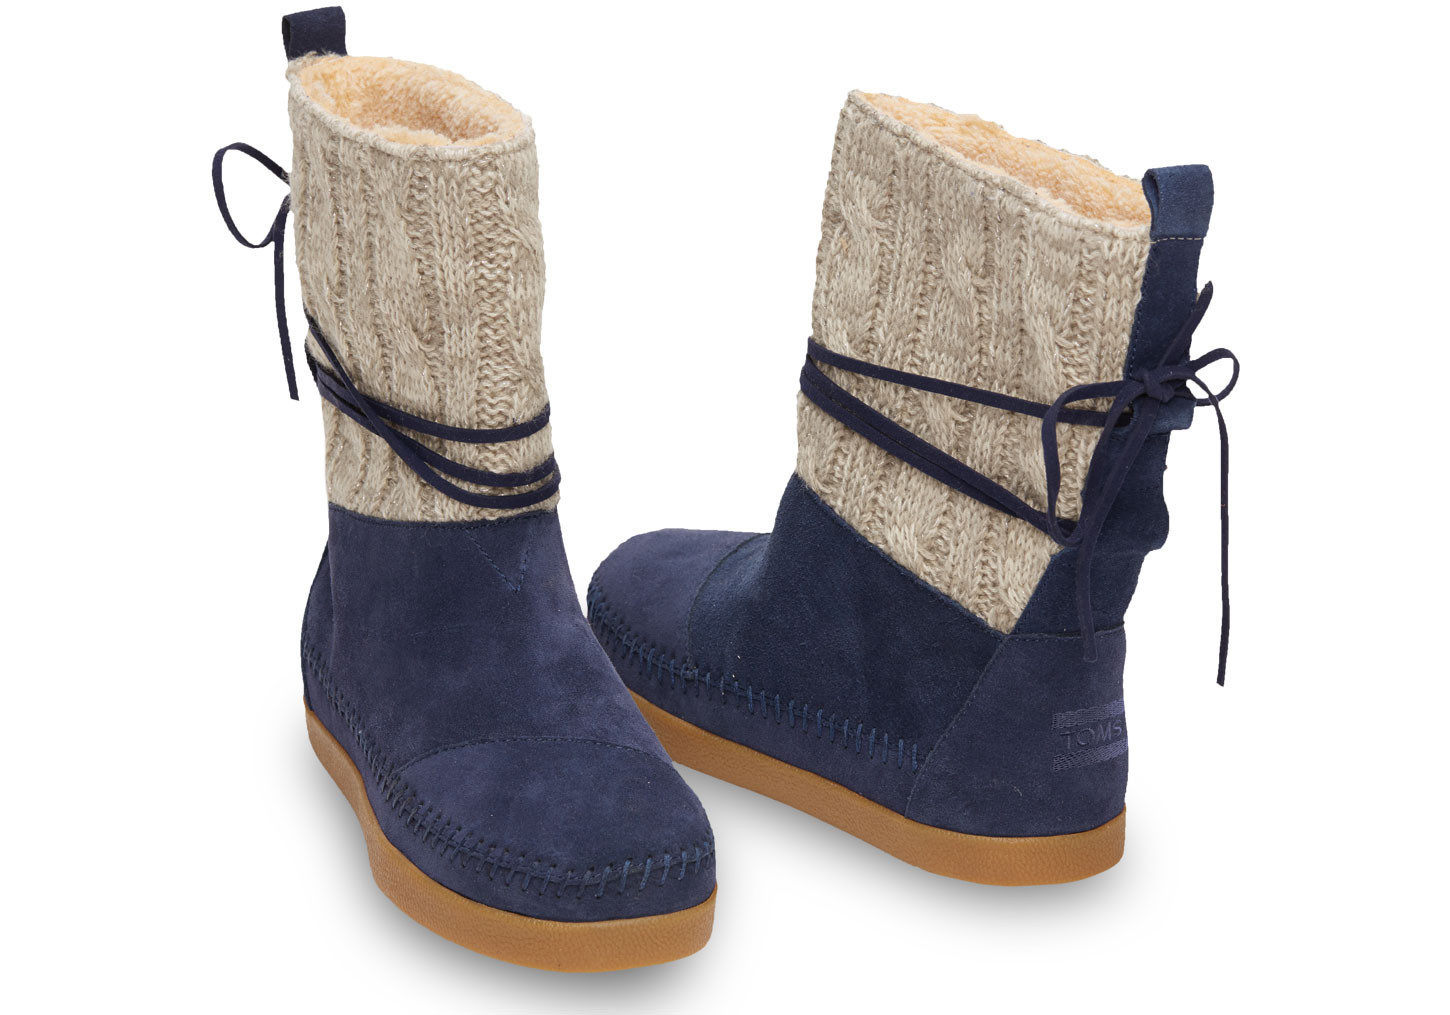 Knit Boots Elegant Chestnut Cable Knit Suede Women S Nepal Boots Of Luxury 48 Photos Knit Boots